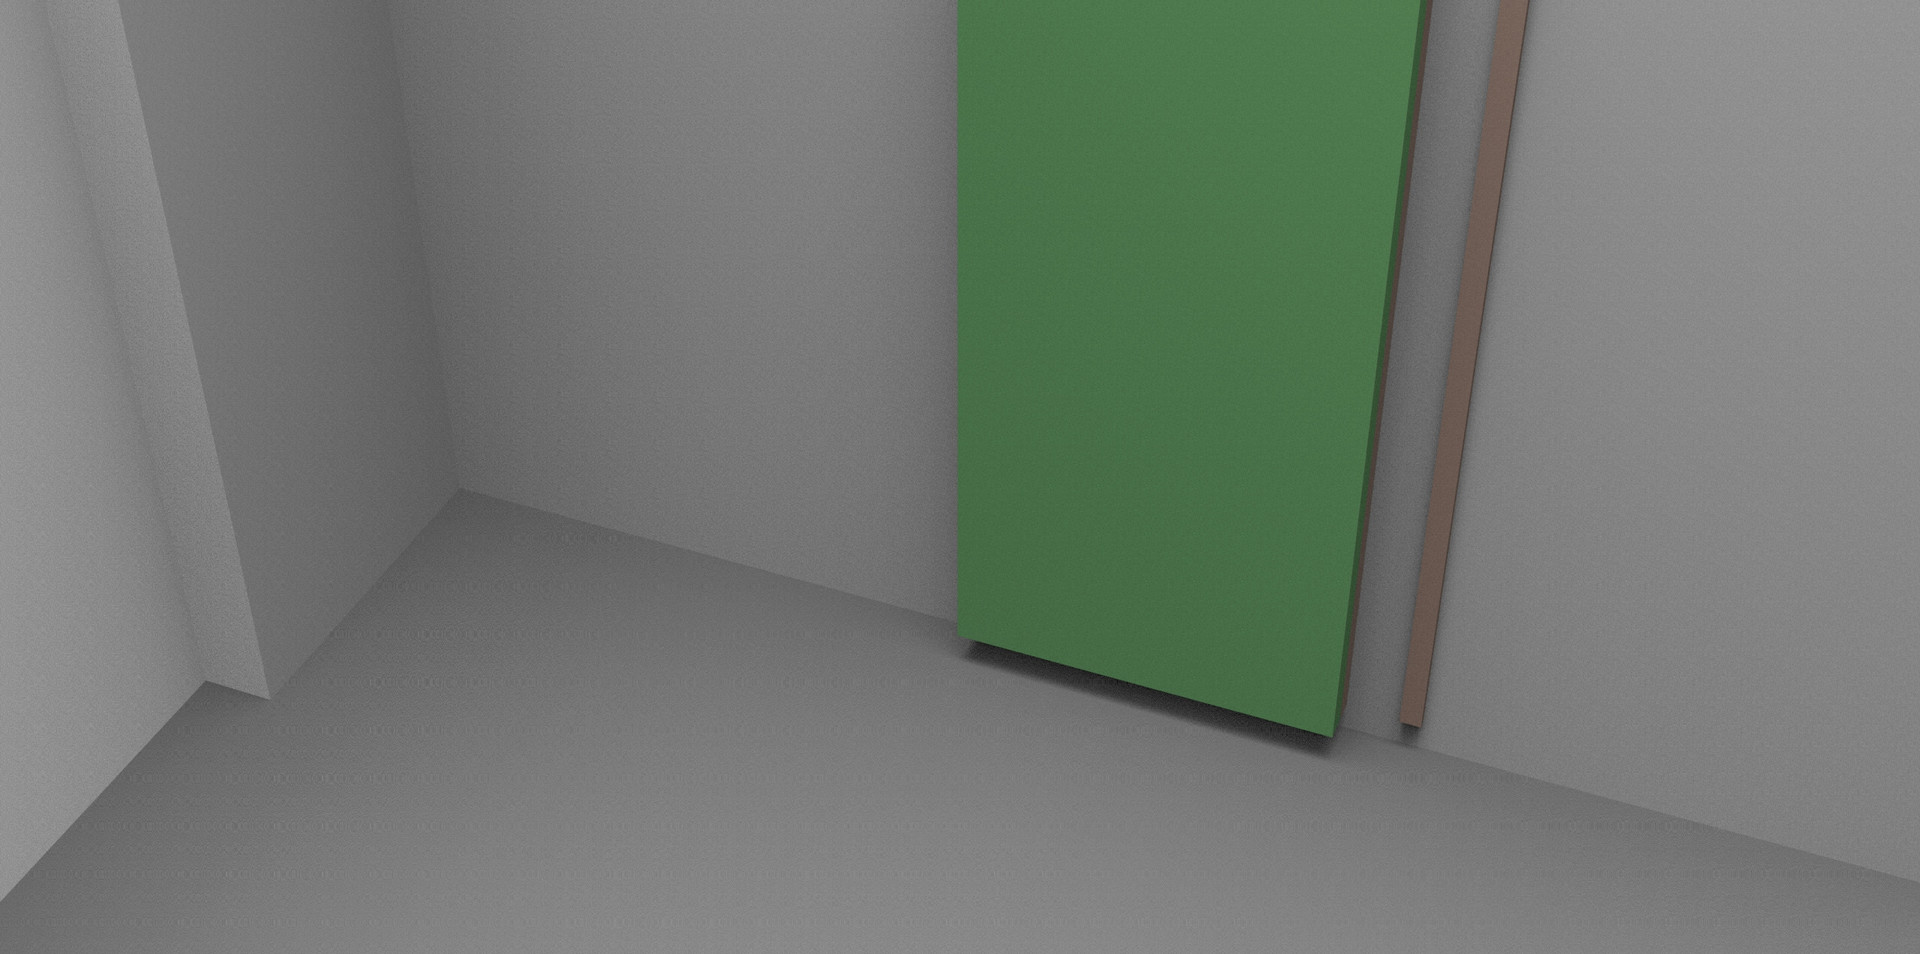 Digital simulation, for an open studio, in the space of Abulafia